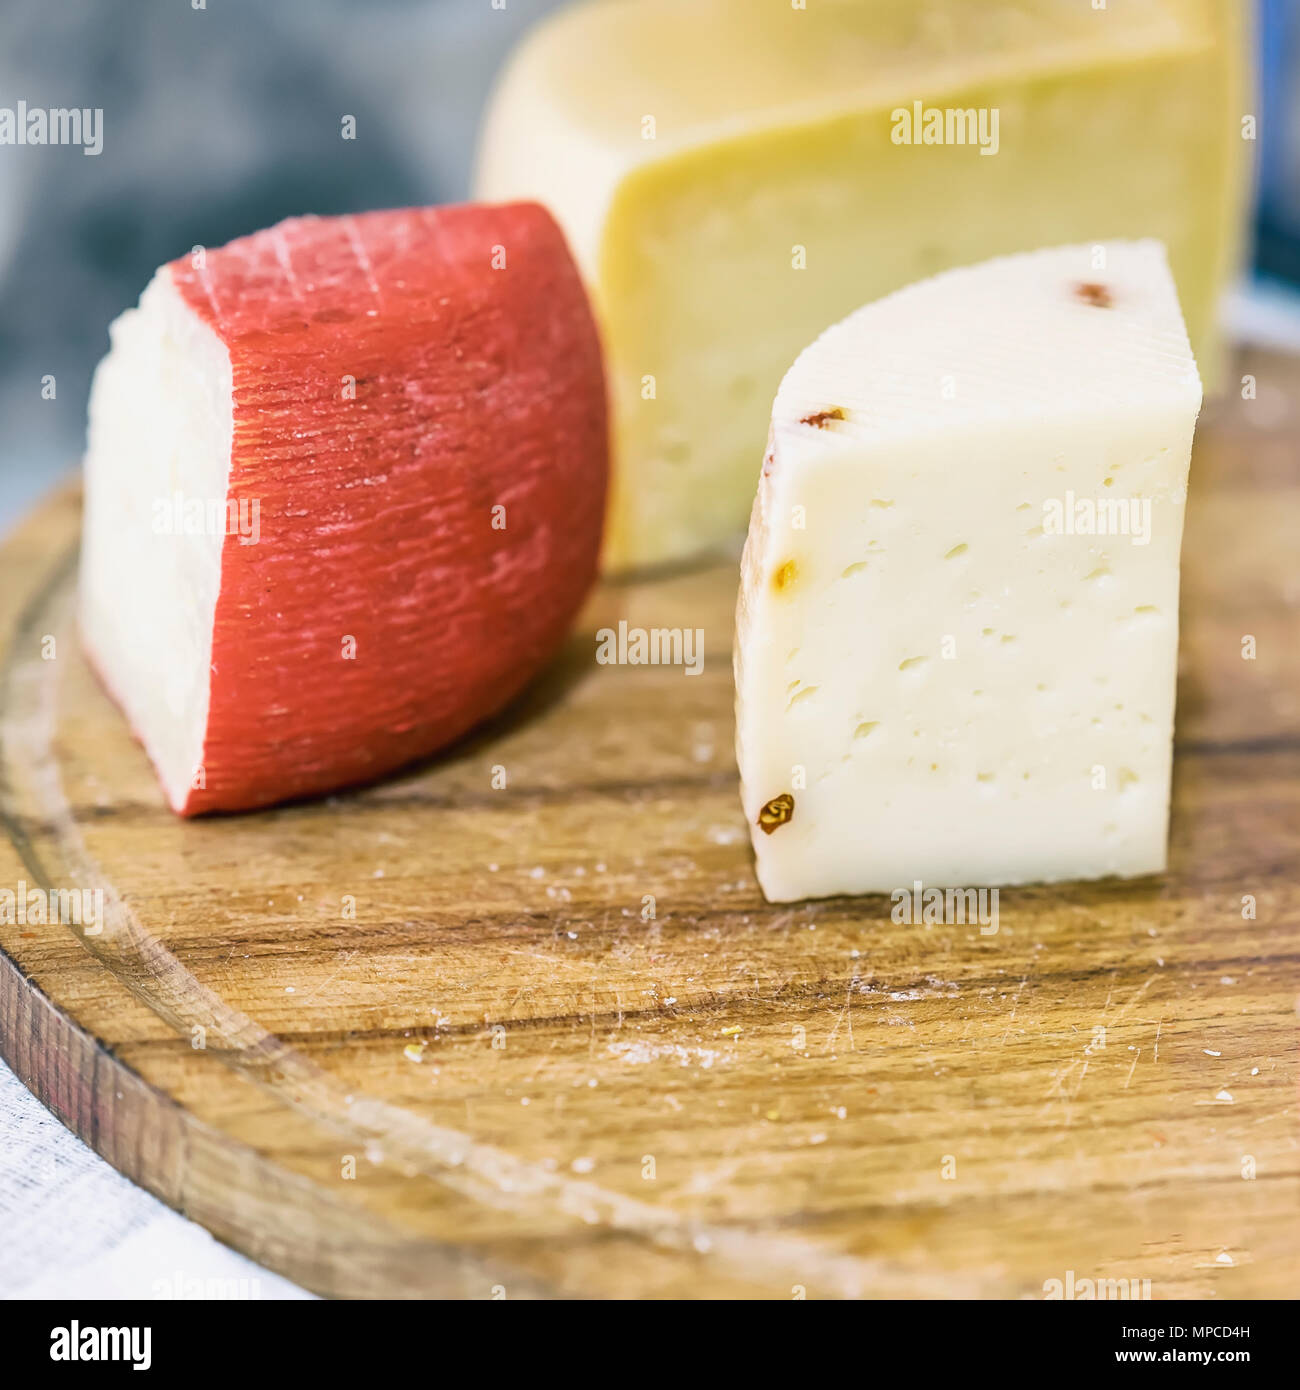 Pieces heads of soft cheeses with different additives on wooden market board. Gastronomic dairy produce, real scene in the food market, square - Stock Image